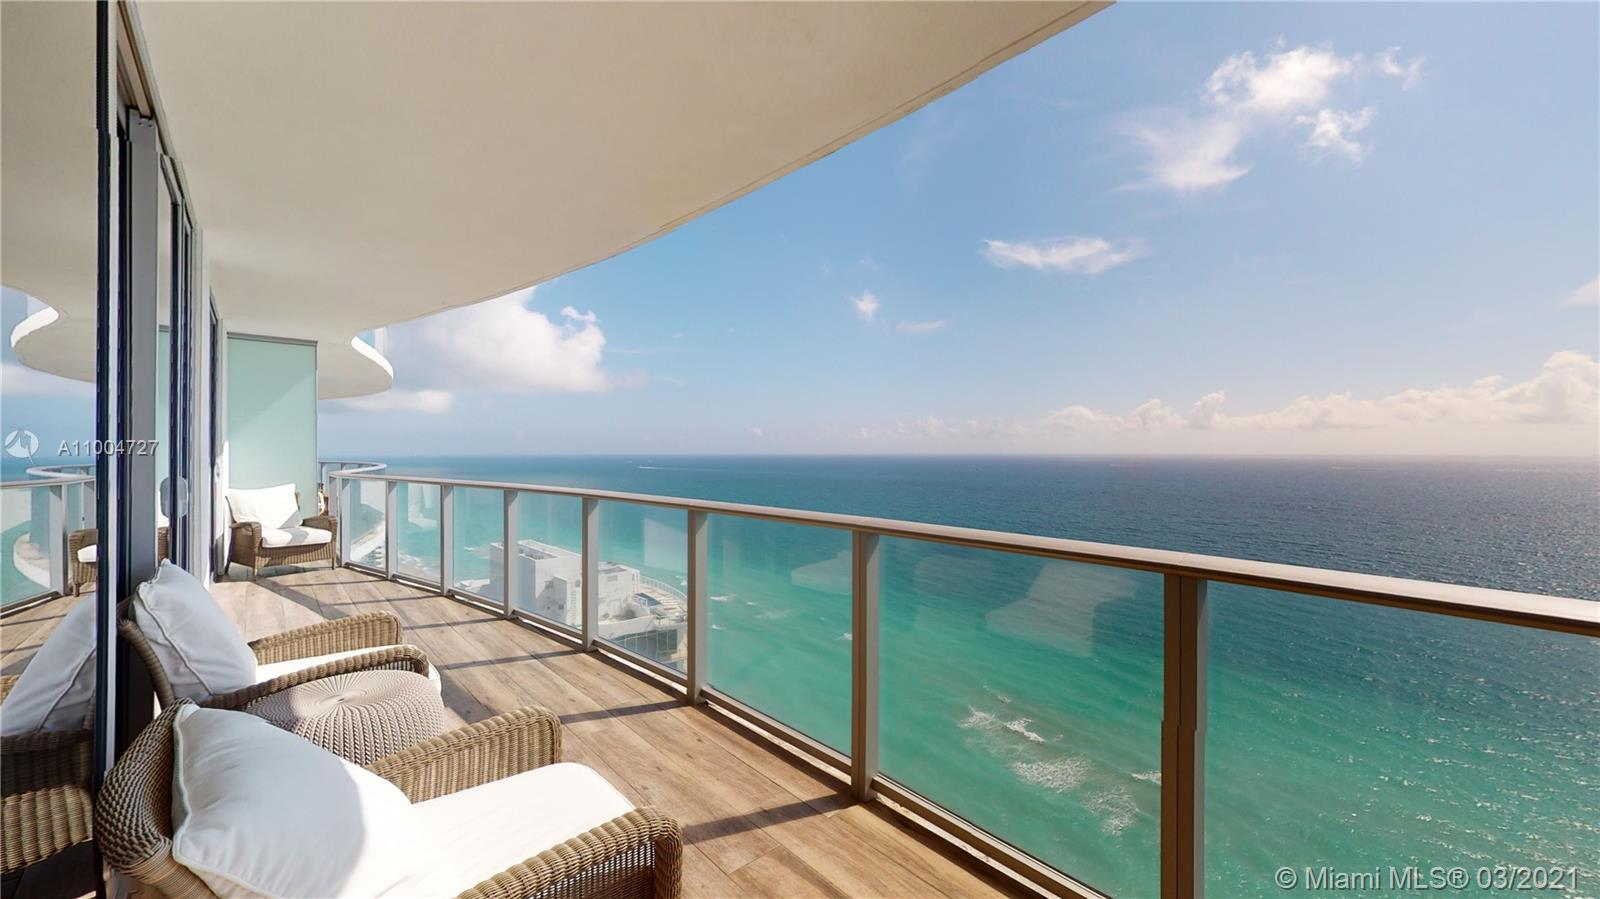 Spacious and modern 3BED/3BATH corner unit on the 28th floor in stylish Hyde Resort and Residences.